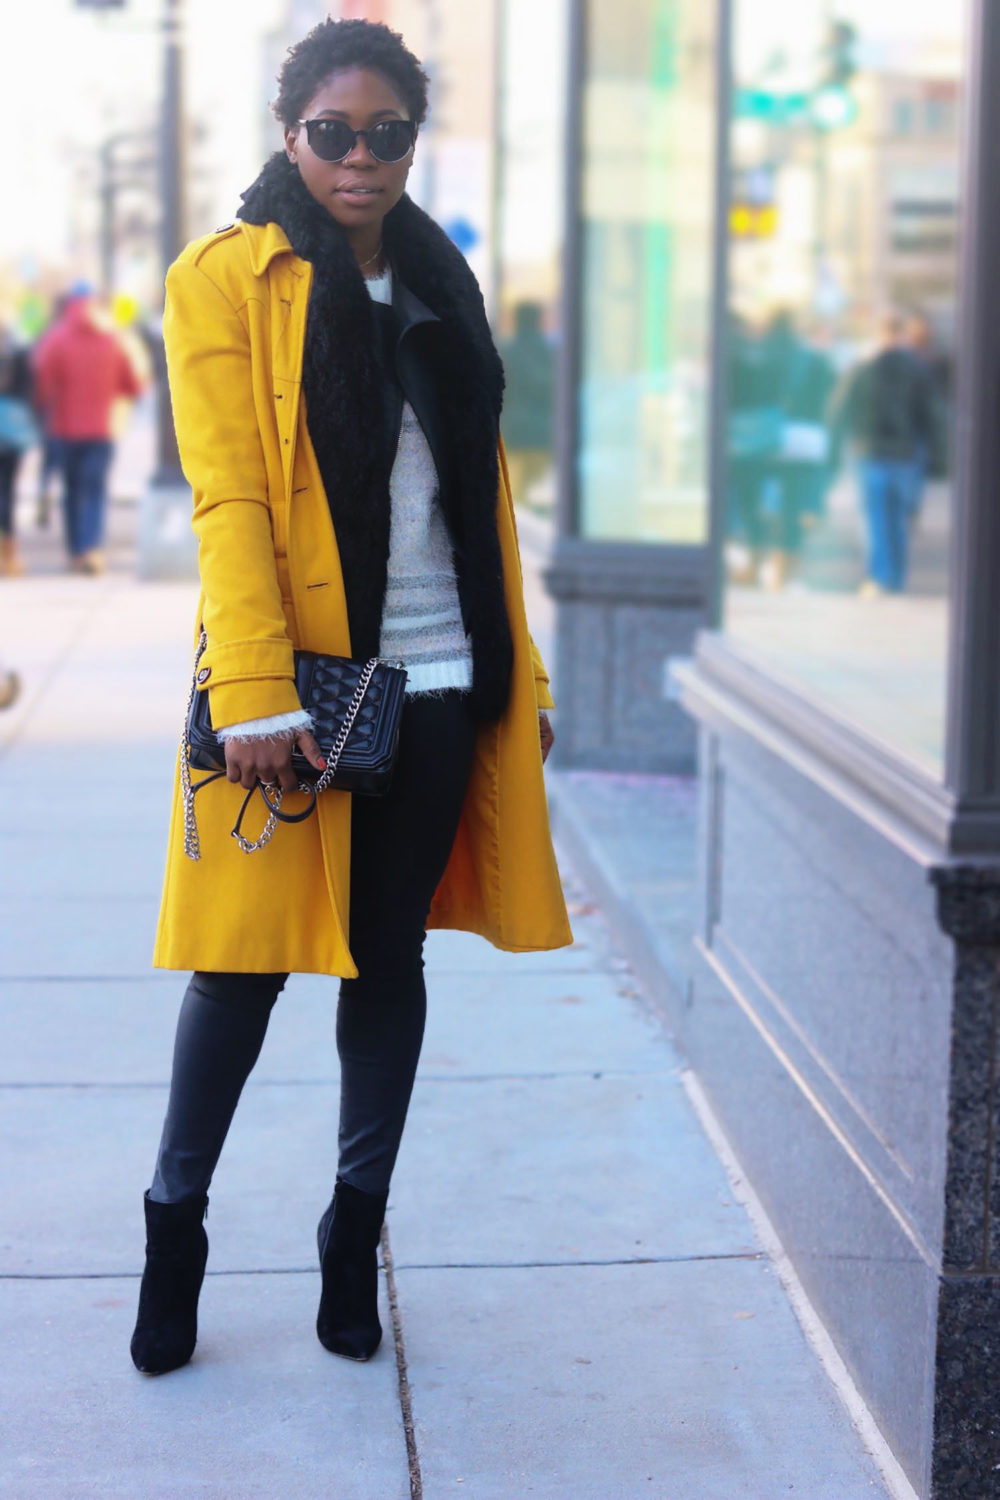 style-synopsis-black-yellow-winter-fashion